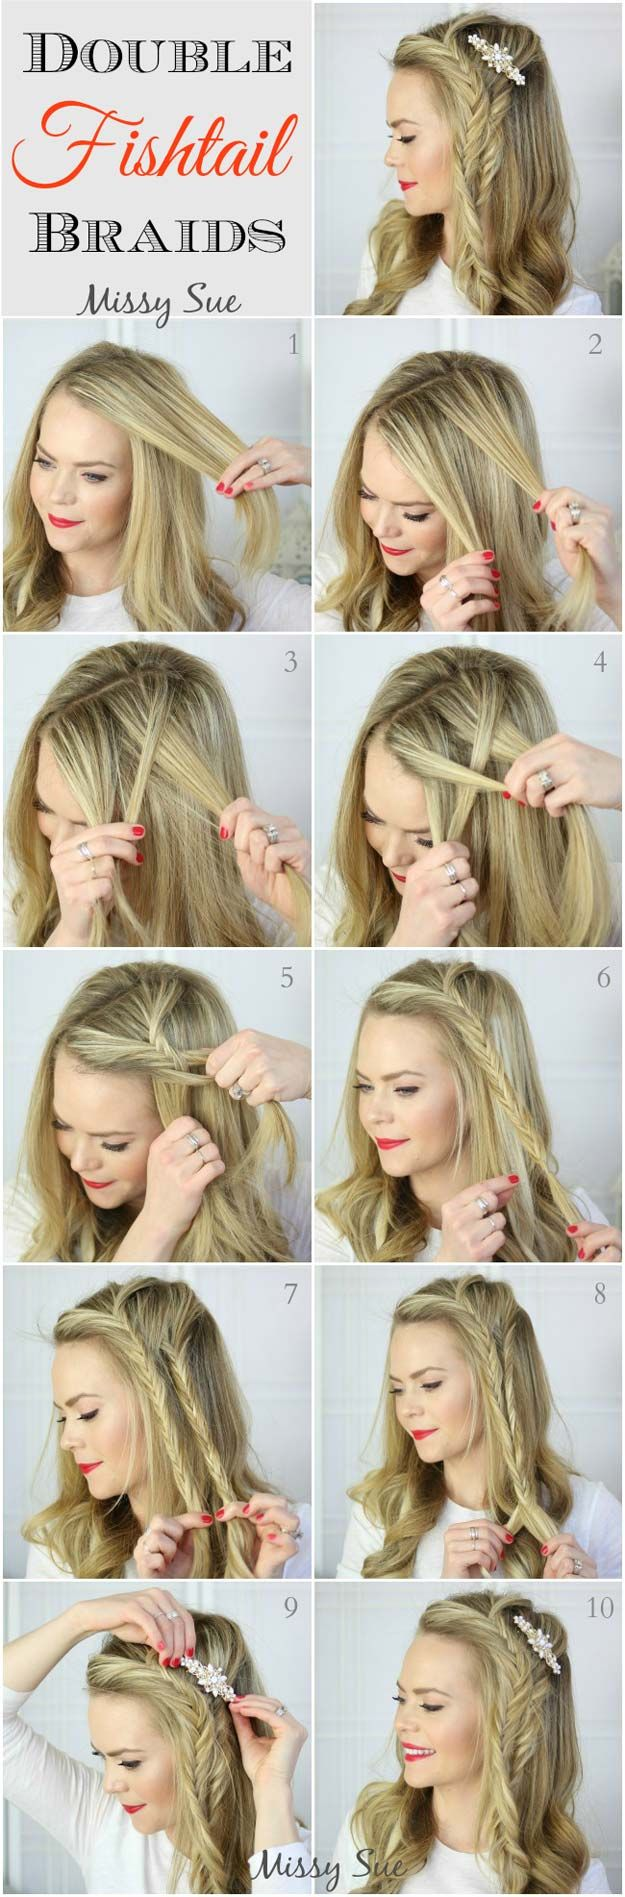 Best Hair Braiding Tutorials - Braid 5-Double Fishtail Braids - Easy Step by Step Tutorials for Braids - How To Braid Fishtail, French Braids, Flower Crown, Side Braids, Cornrows, Updos - Cool Braided Hairstyles for Girls, Teens and Women - School, Day and Evening, Boho, Casual and Formal Looks http://diyprojectsforteens.com/hair-braiding-tutorials